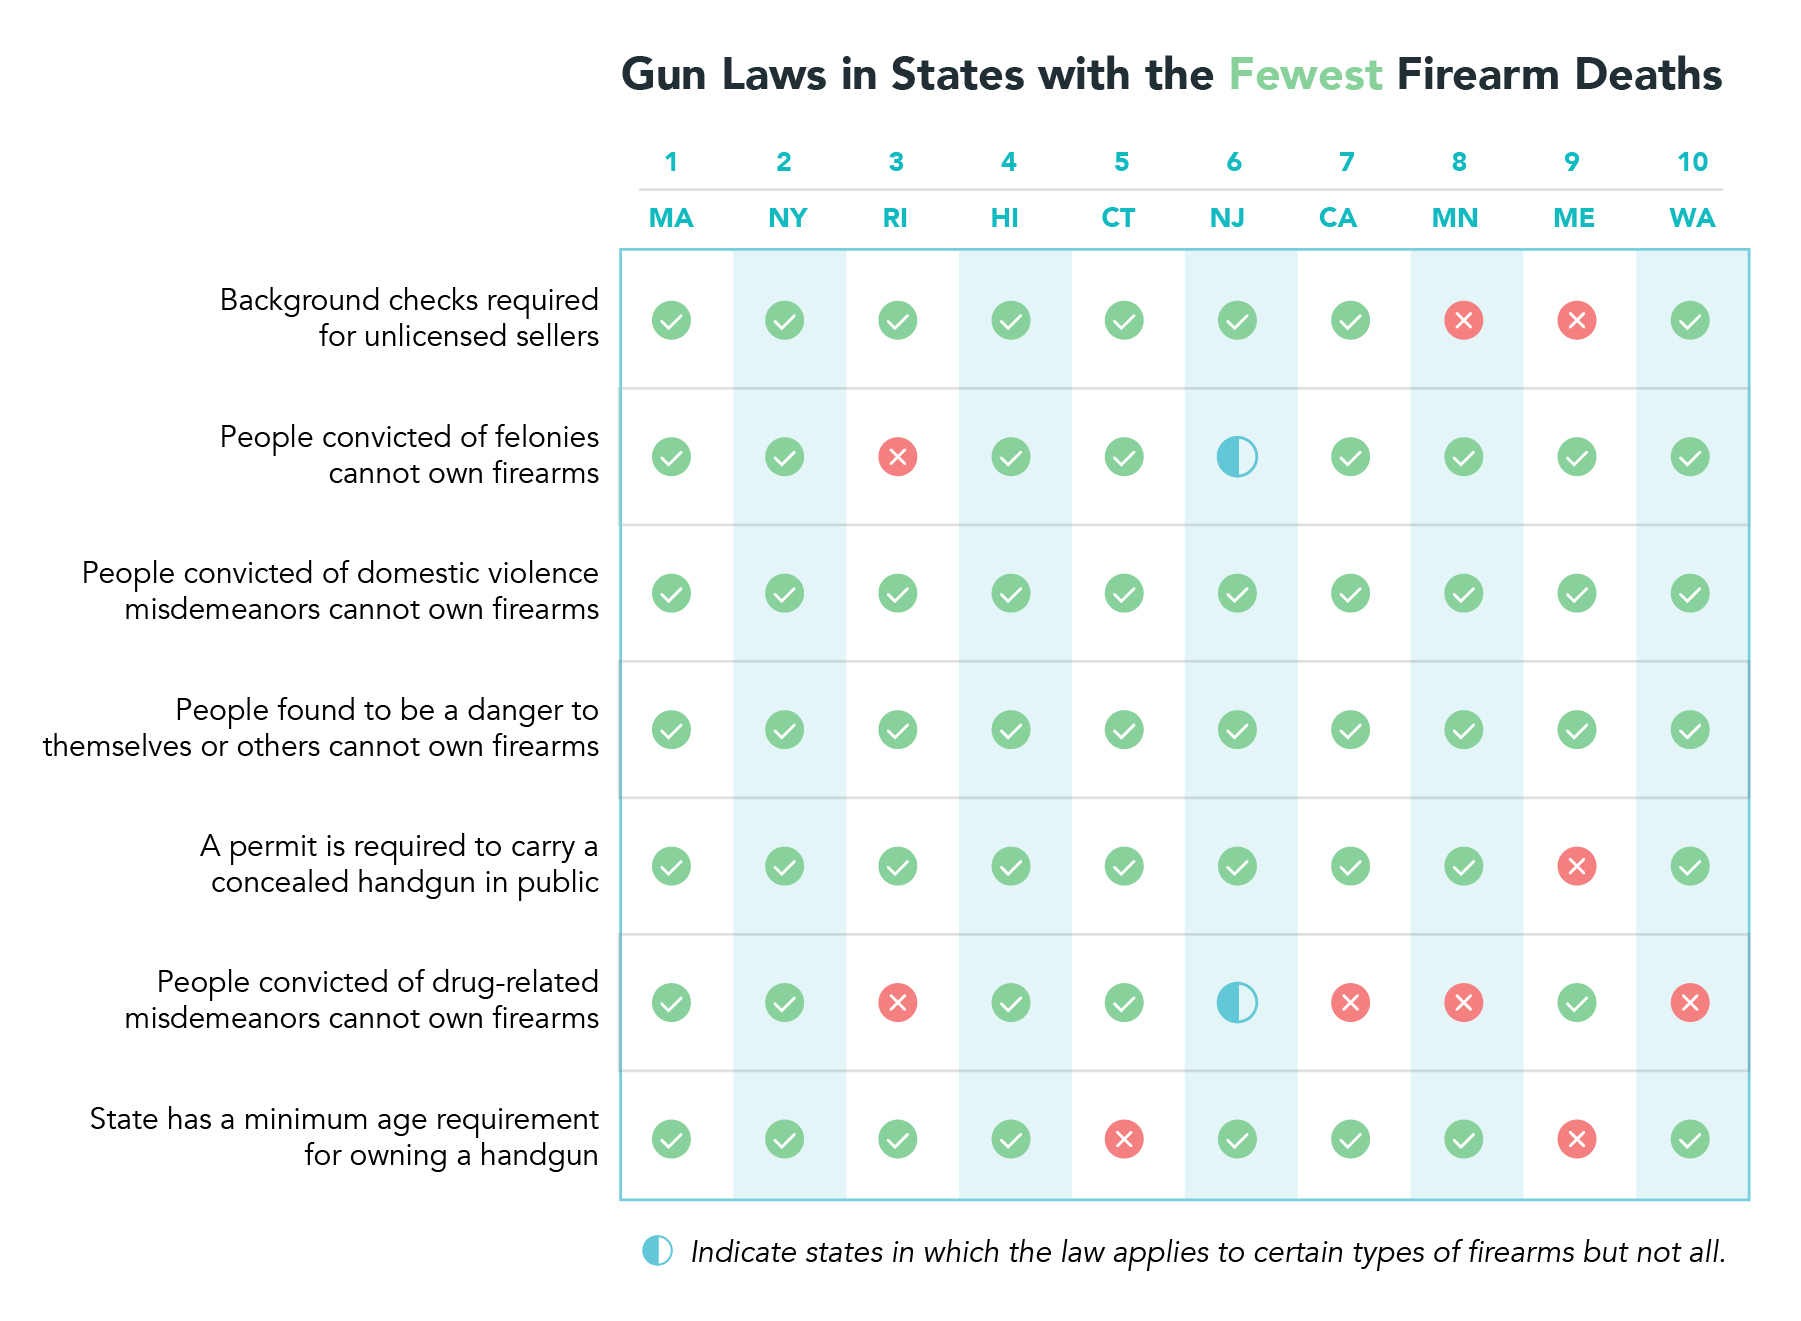 Gun laws in states with the fewest firearm deaths